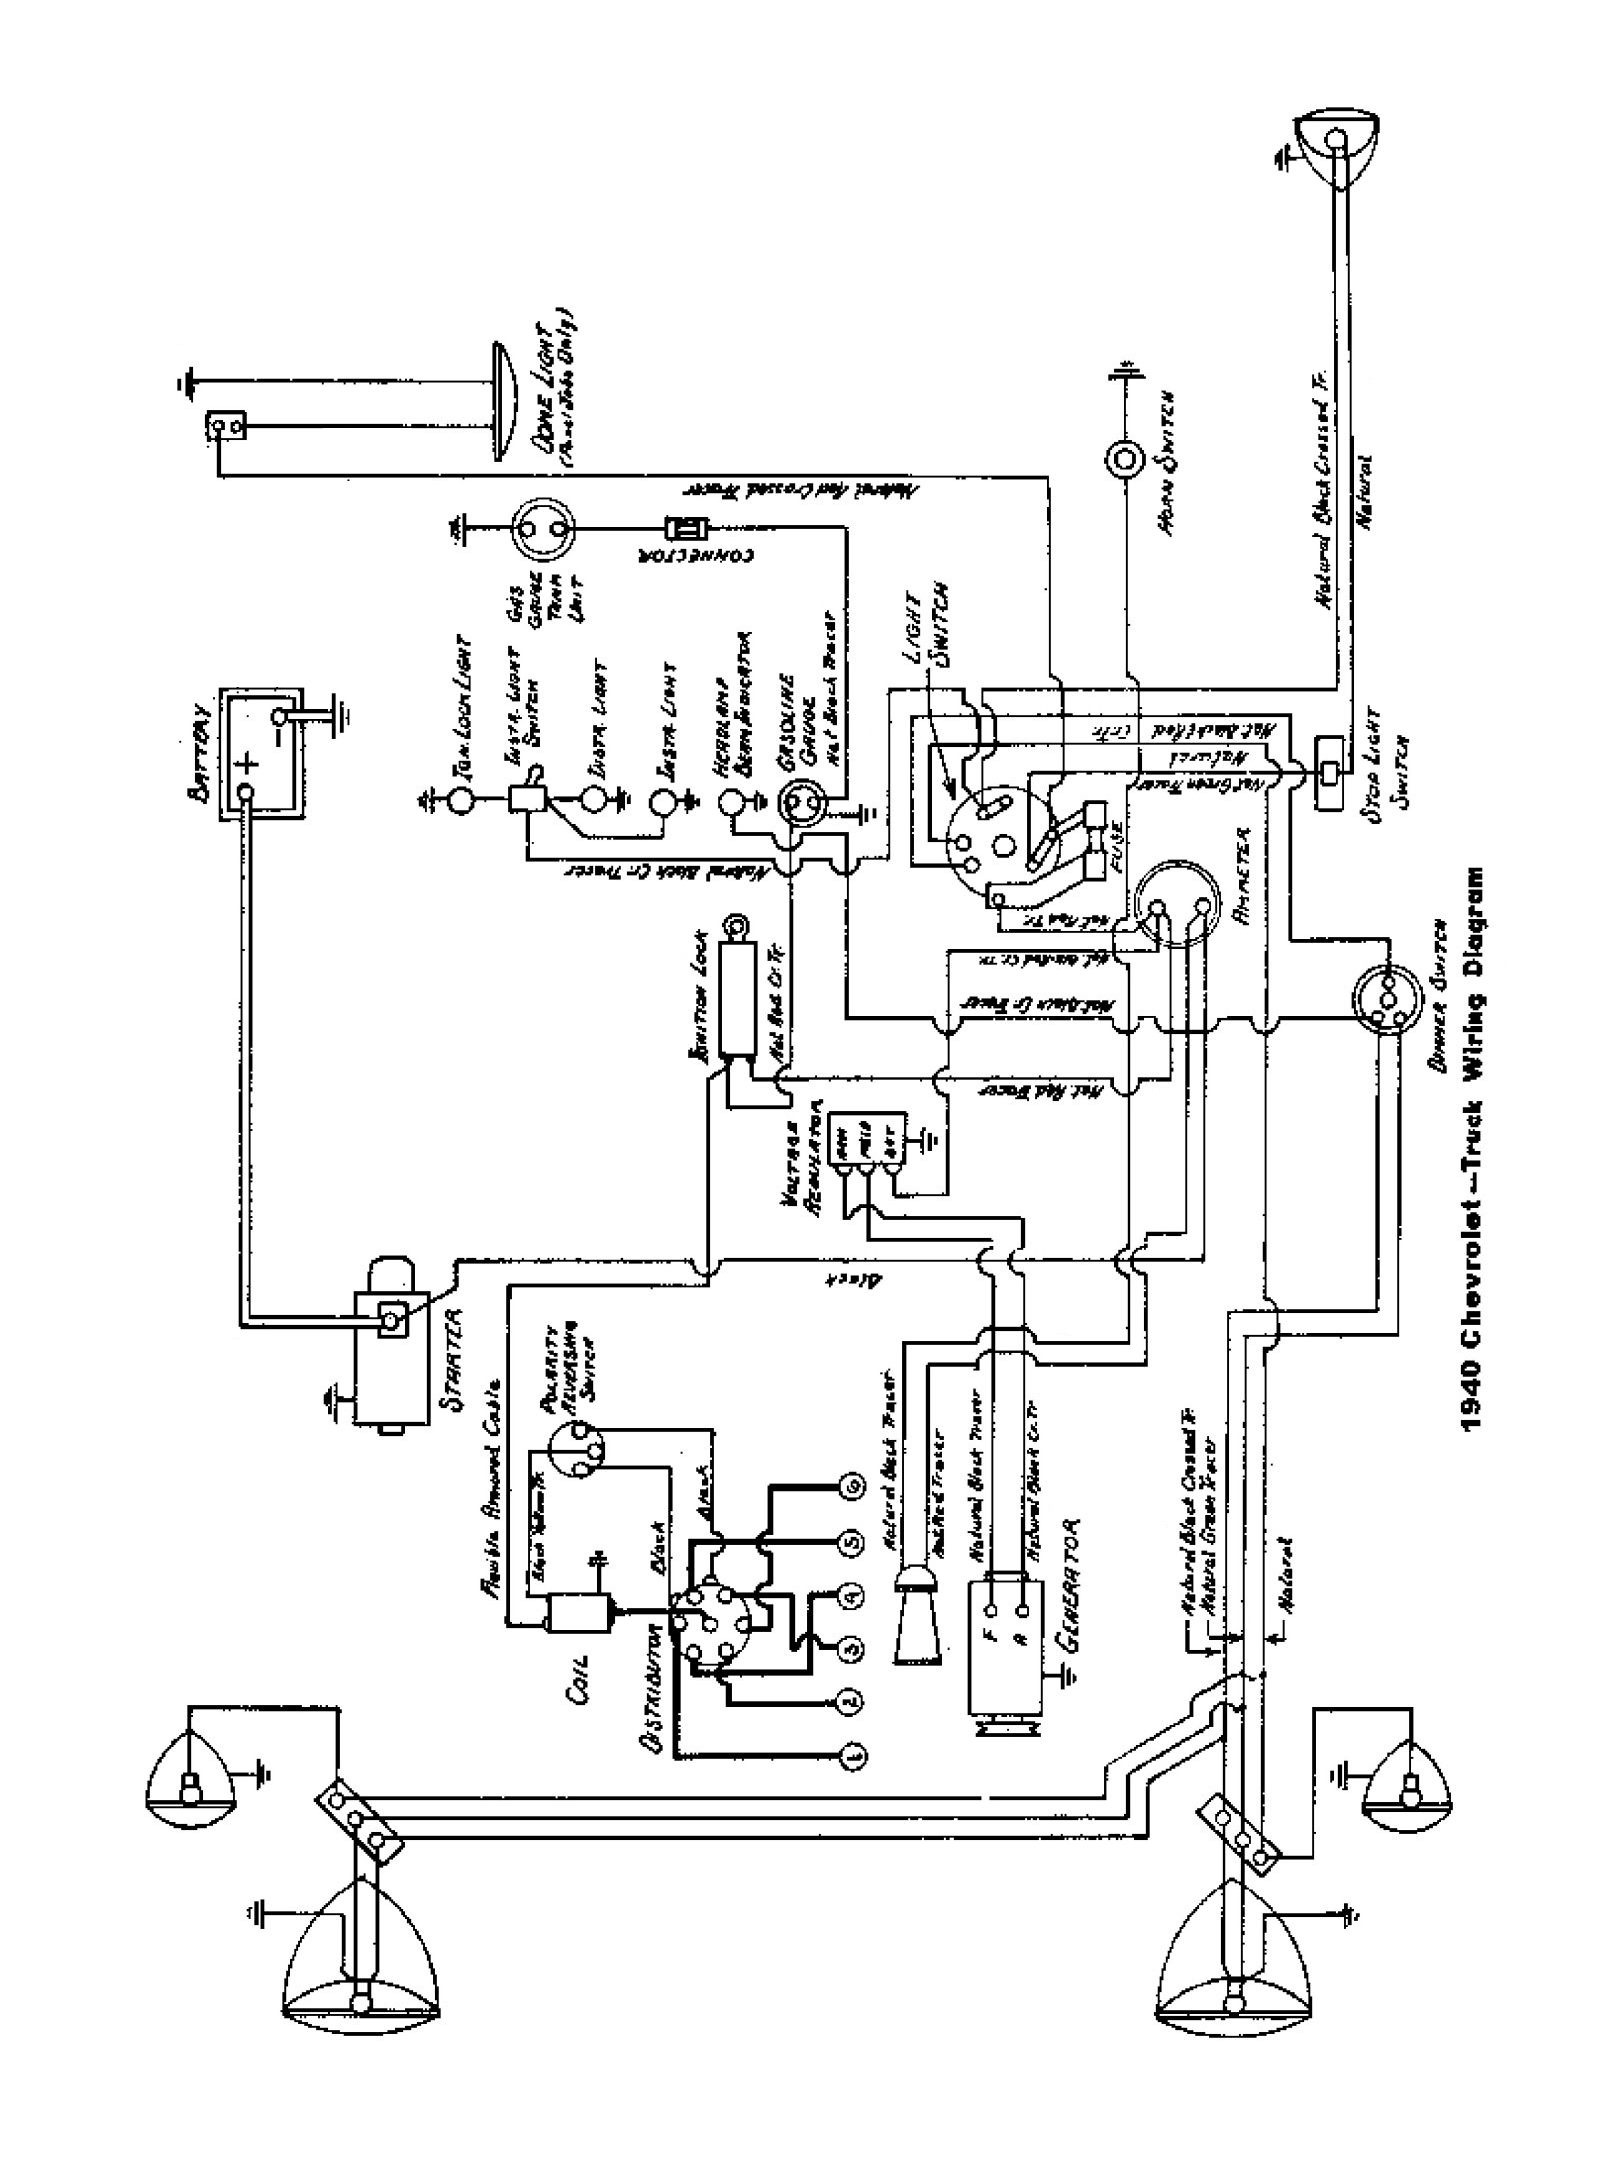 79 chevy pickup wiring diagram chevy wiring diagrams chevy wiring diagrams